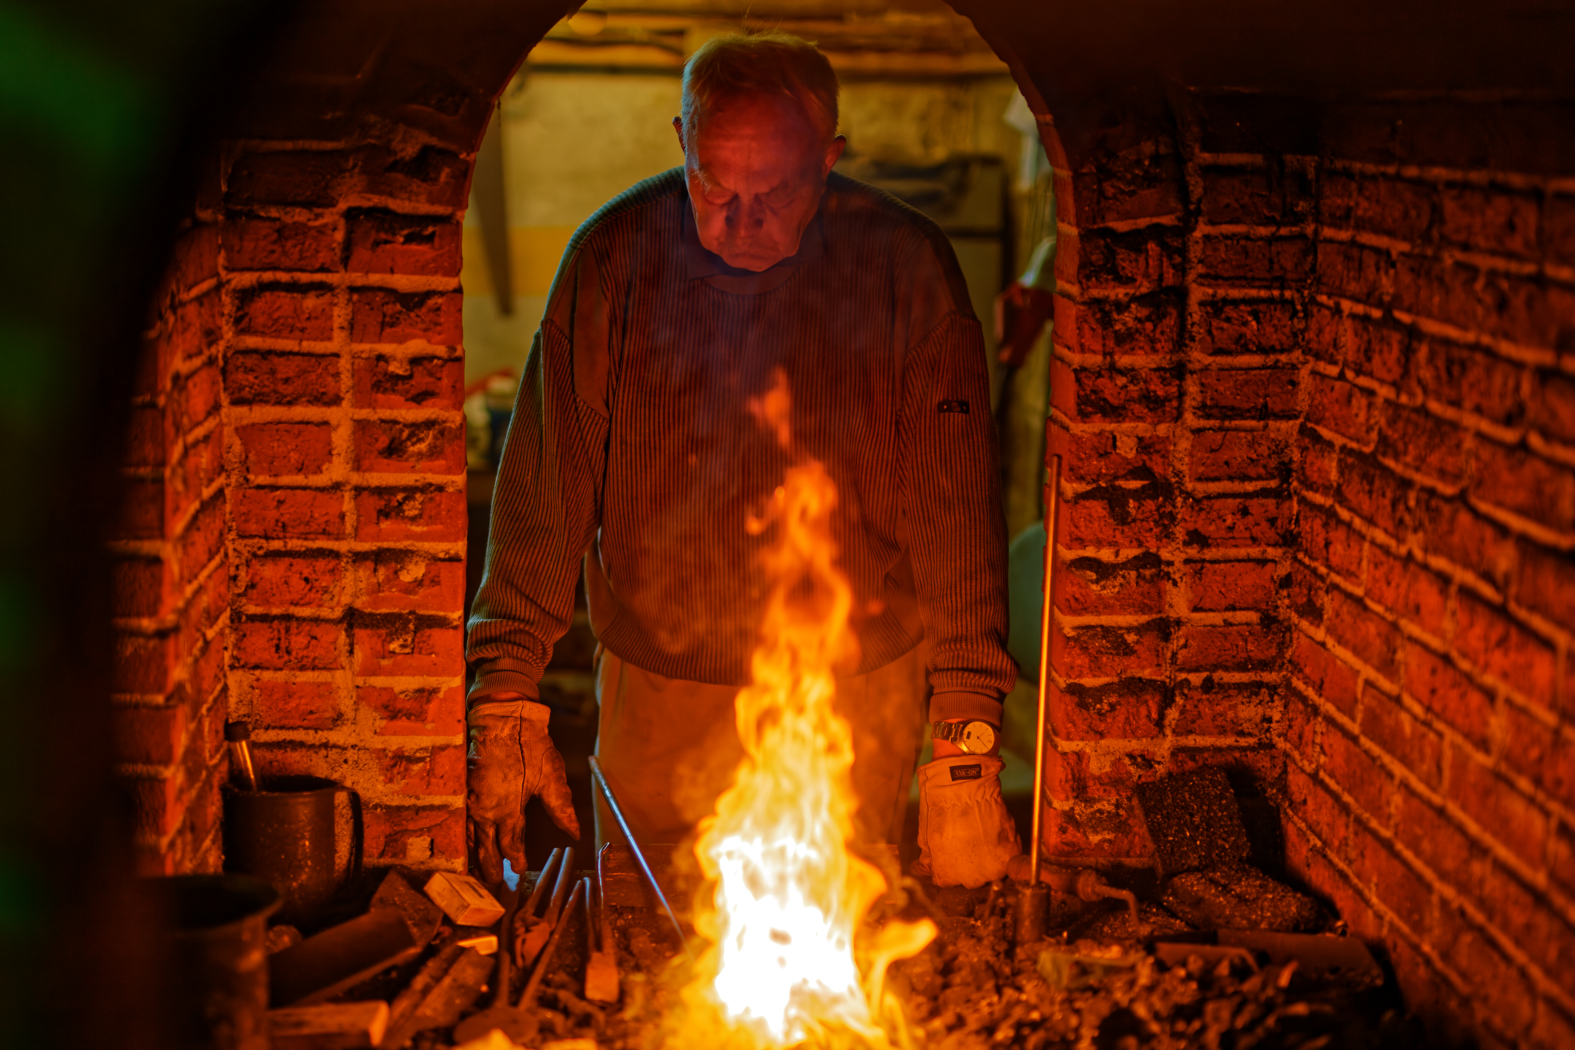 Johannes in the smithy.